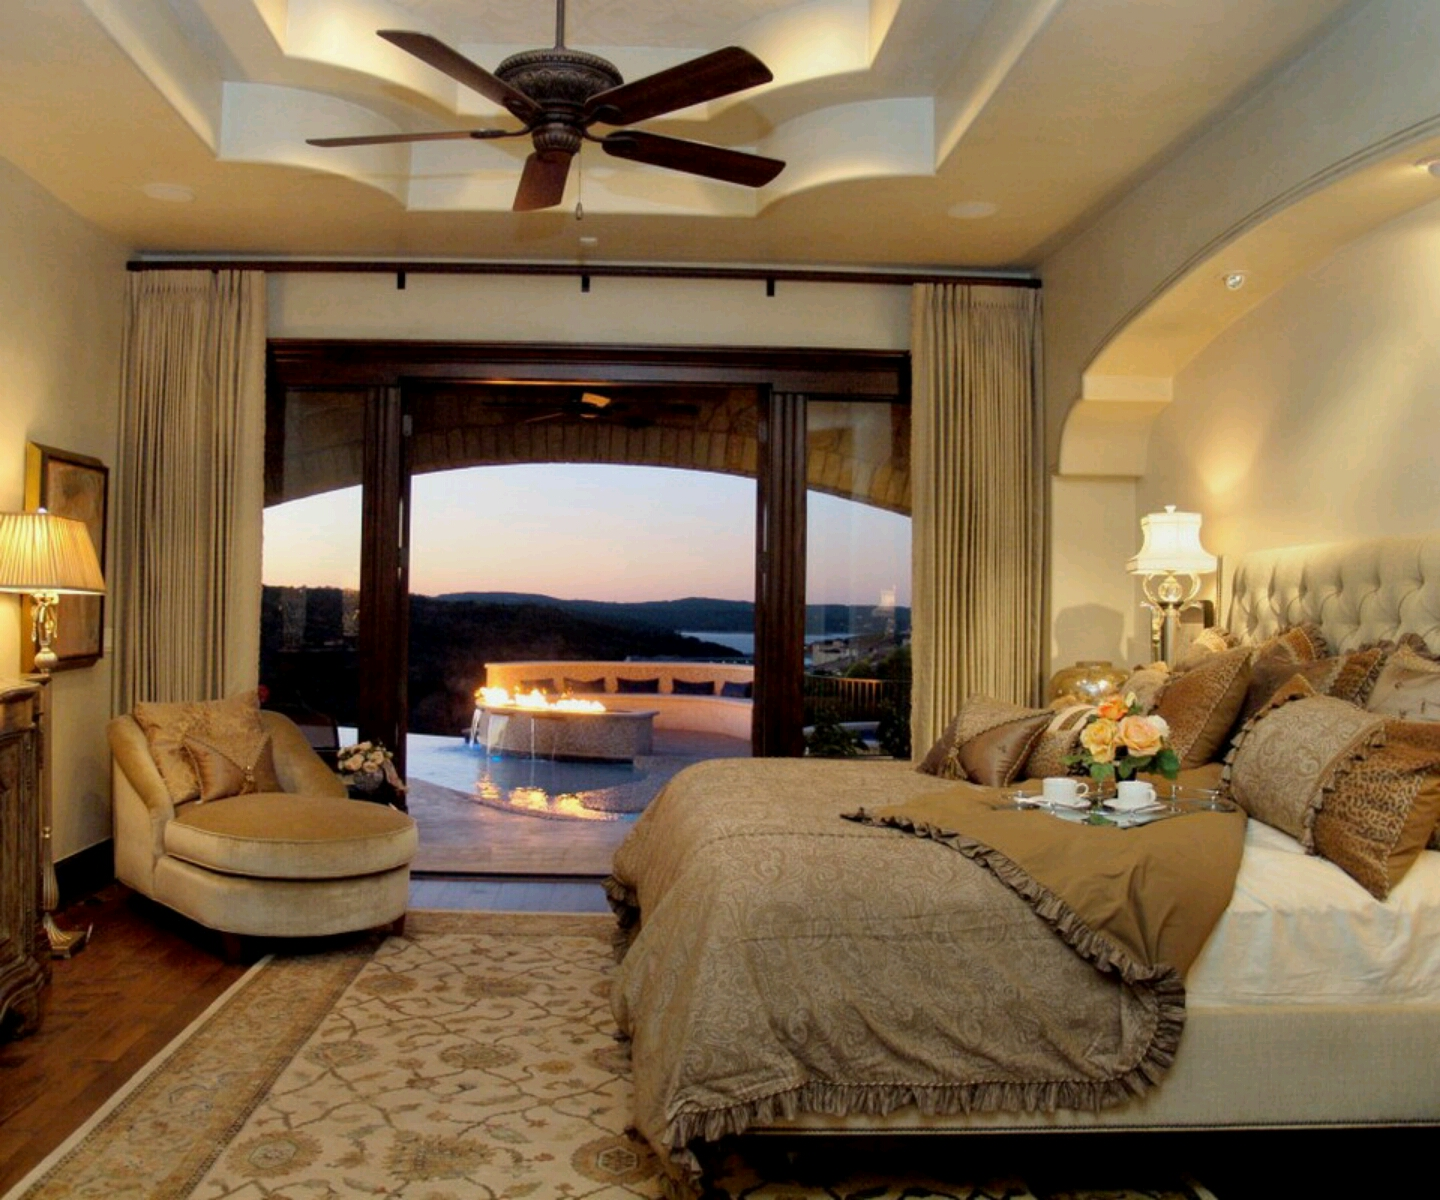 New home designs latest modern bedrooms designs ceiling for Modern bedroom designs ideas